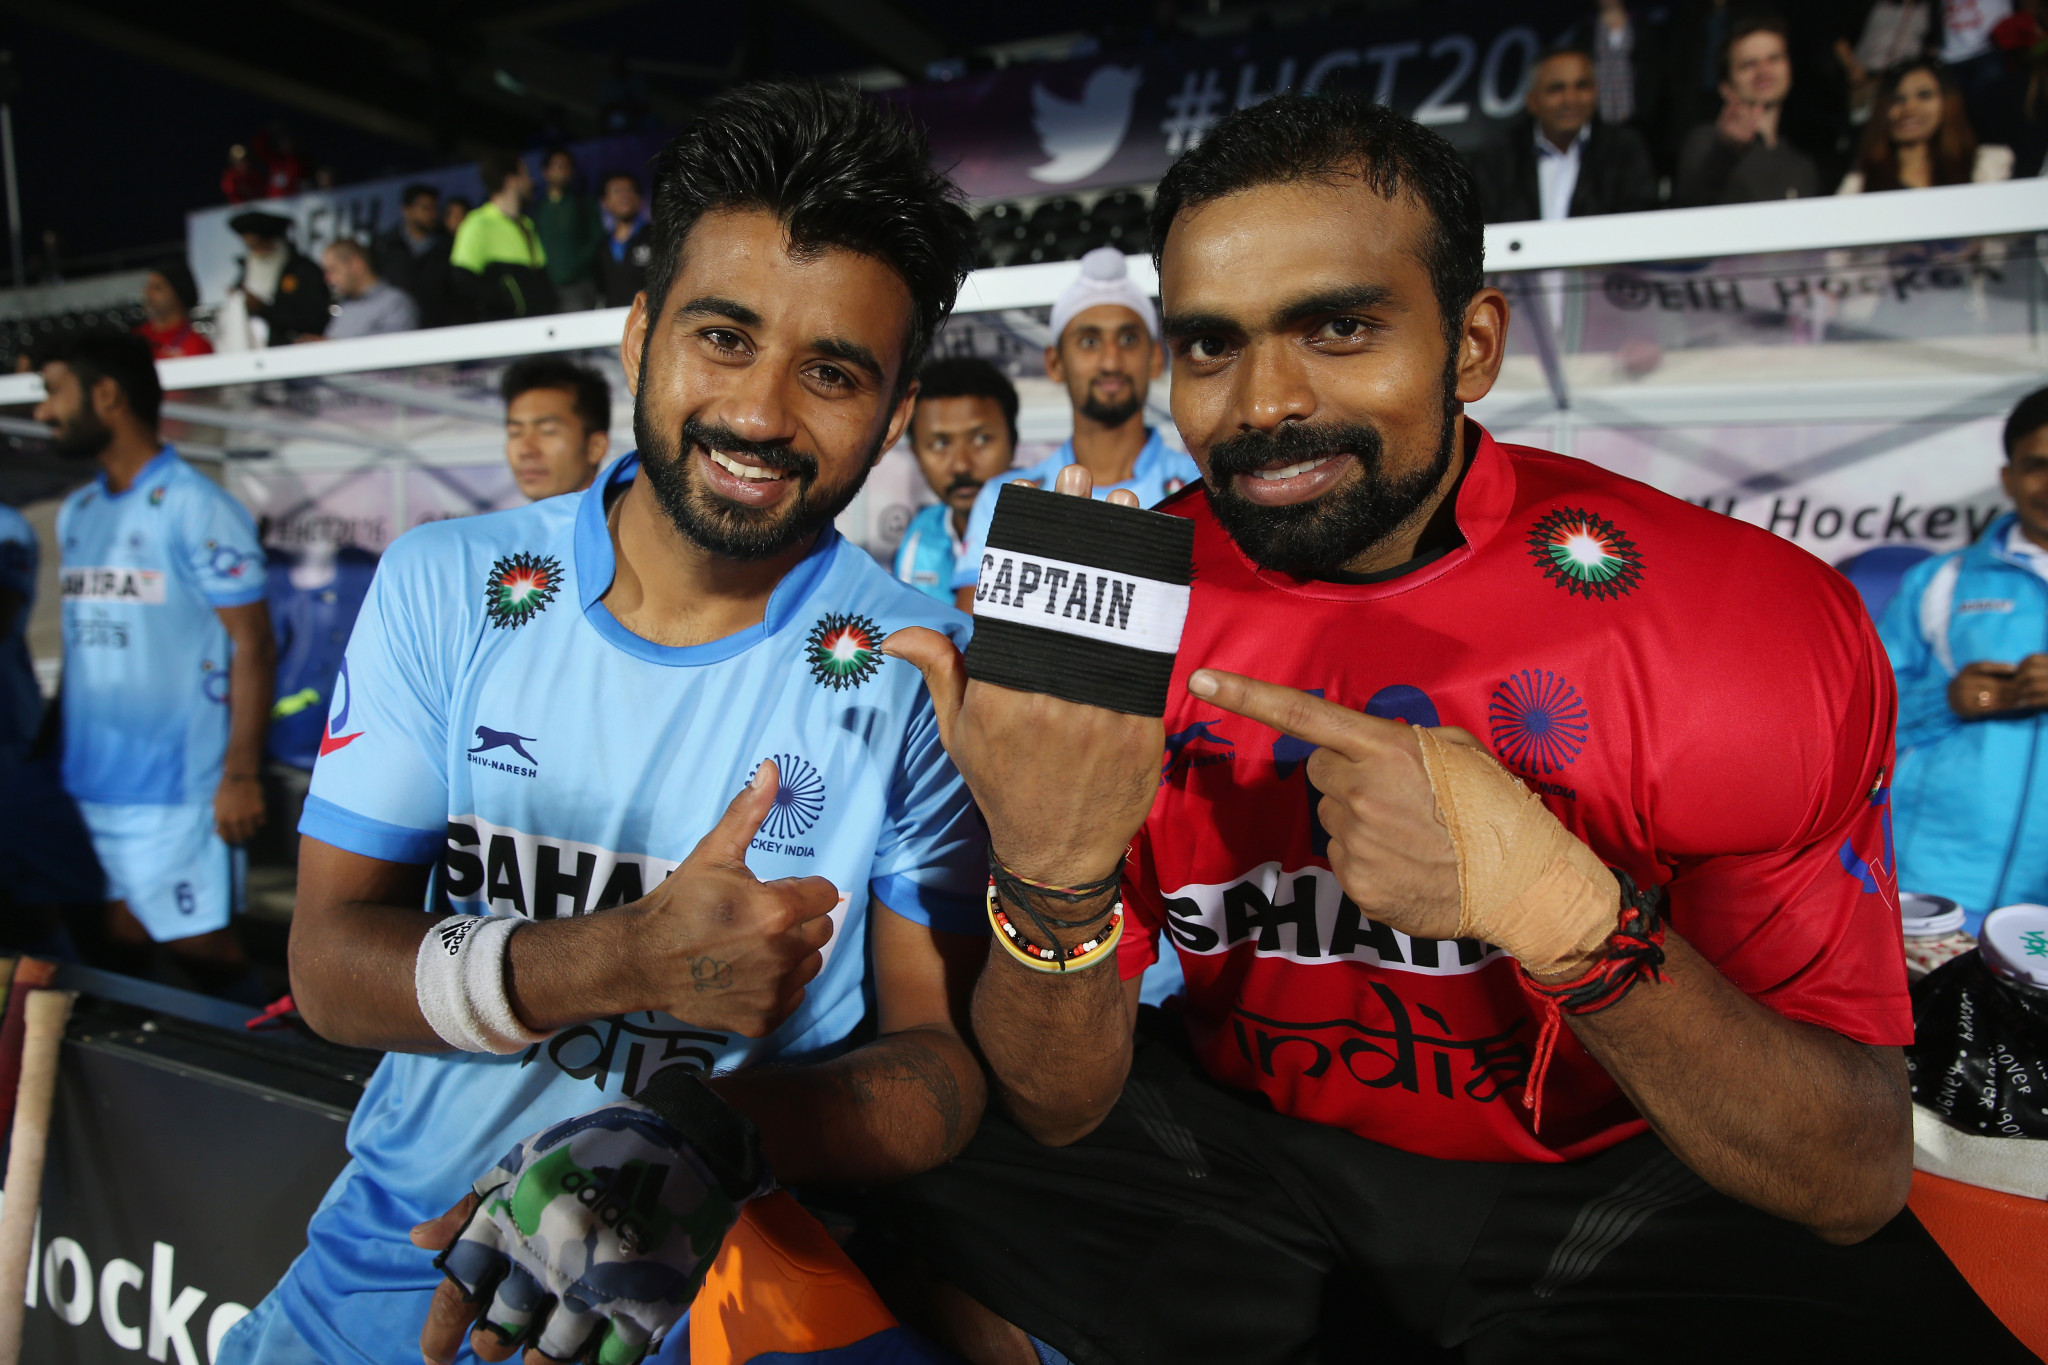 Tokyo 2020 celebrations must end before Hangzhou 2022, says Indian hockey captain